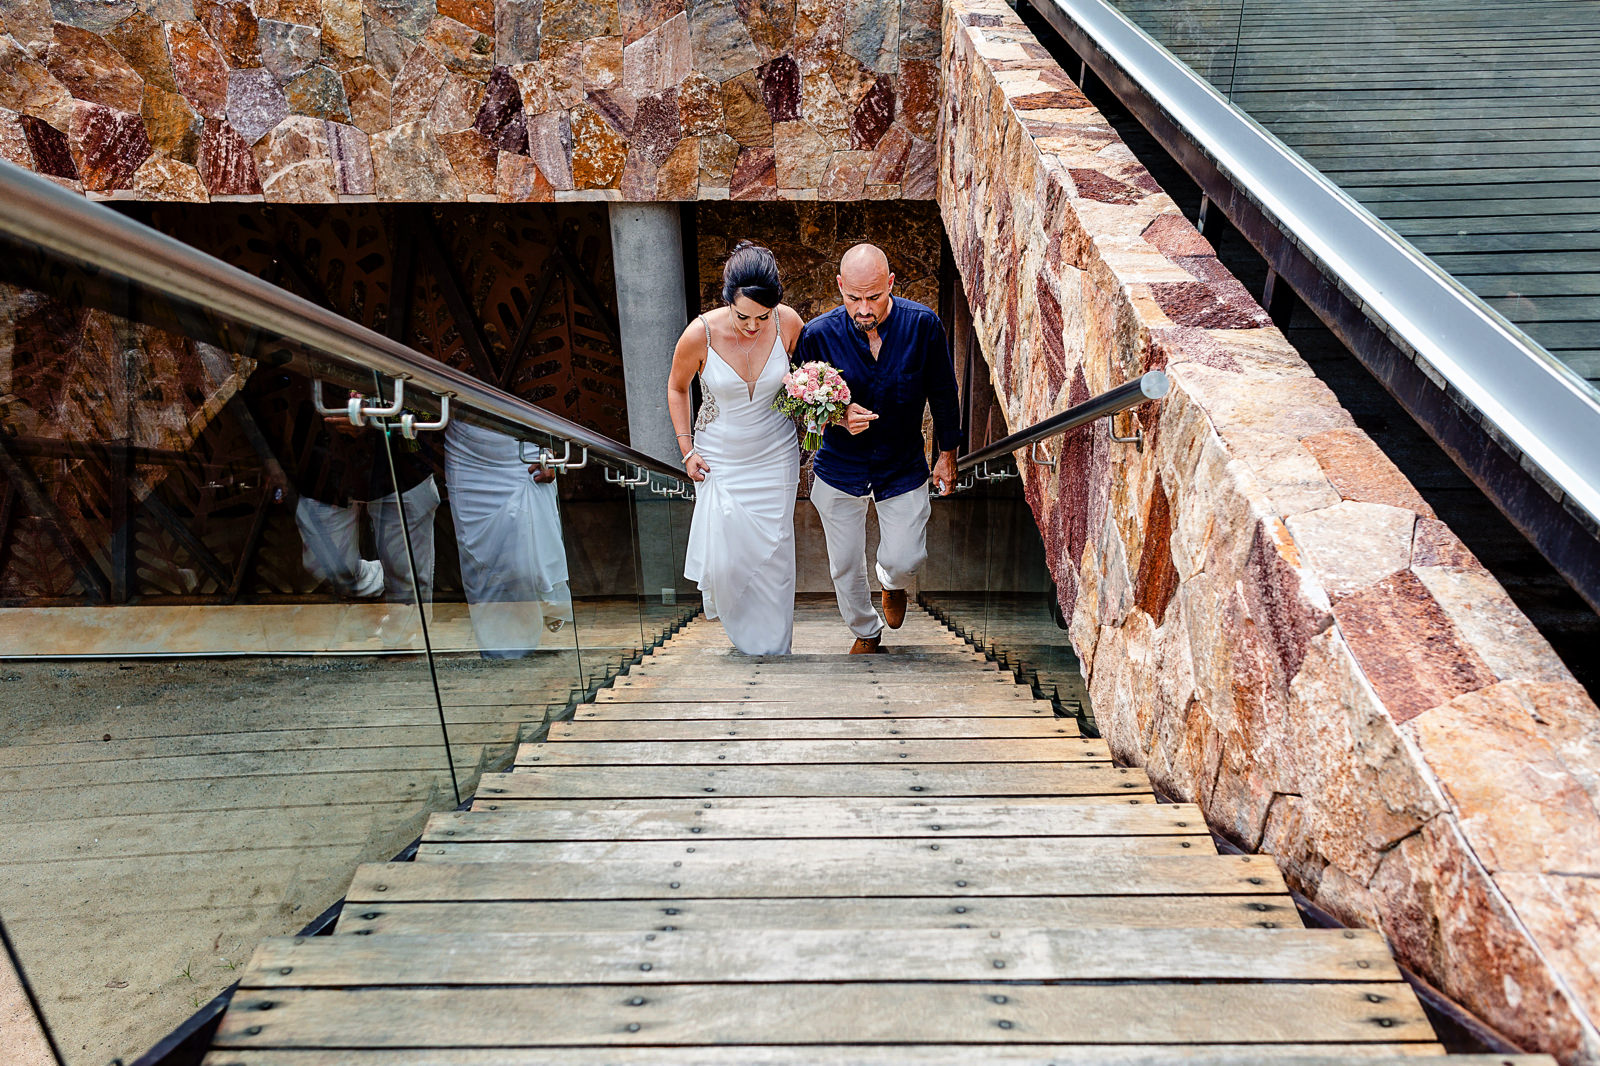 Bride and her dad walking up the stairs to the wedding ceremony.